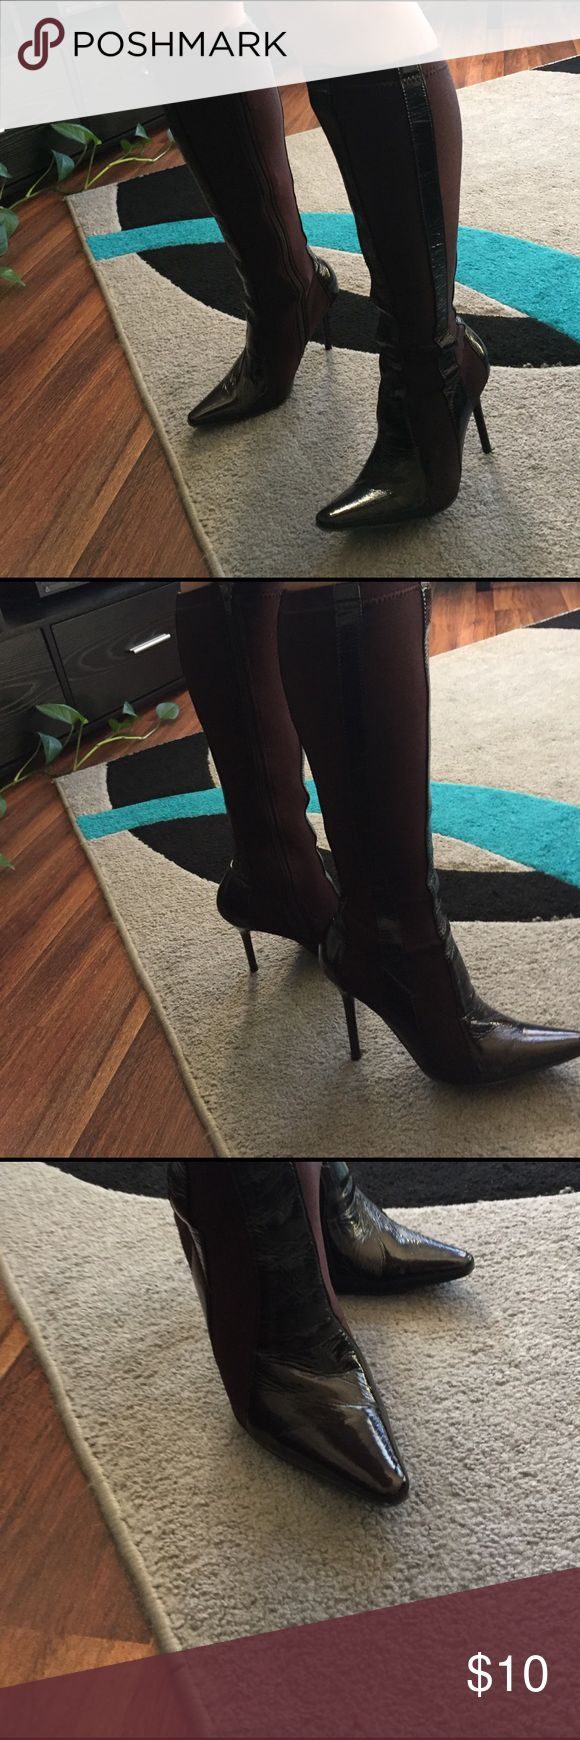 🔥PATENT HIGH HEEL BOOTS🔥 ✨SUPER SEXY✨ Stretch knee high boots. Patent & super stretch material. One zipper is MISSING the pull. But, very easy to put on & off. Great condition!! Worn a few times. Shoes Heeled Boots